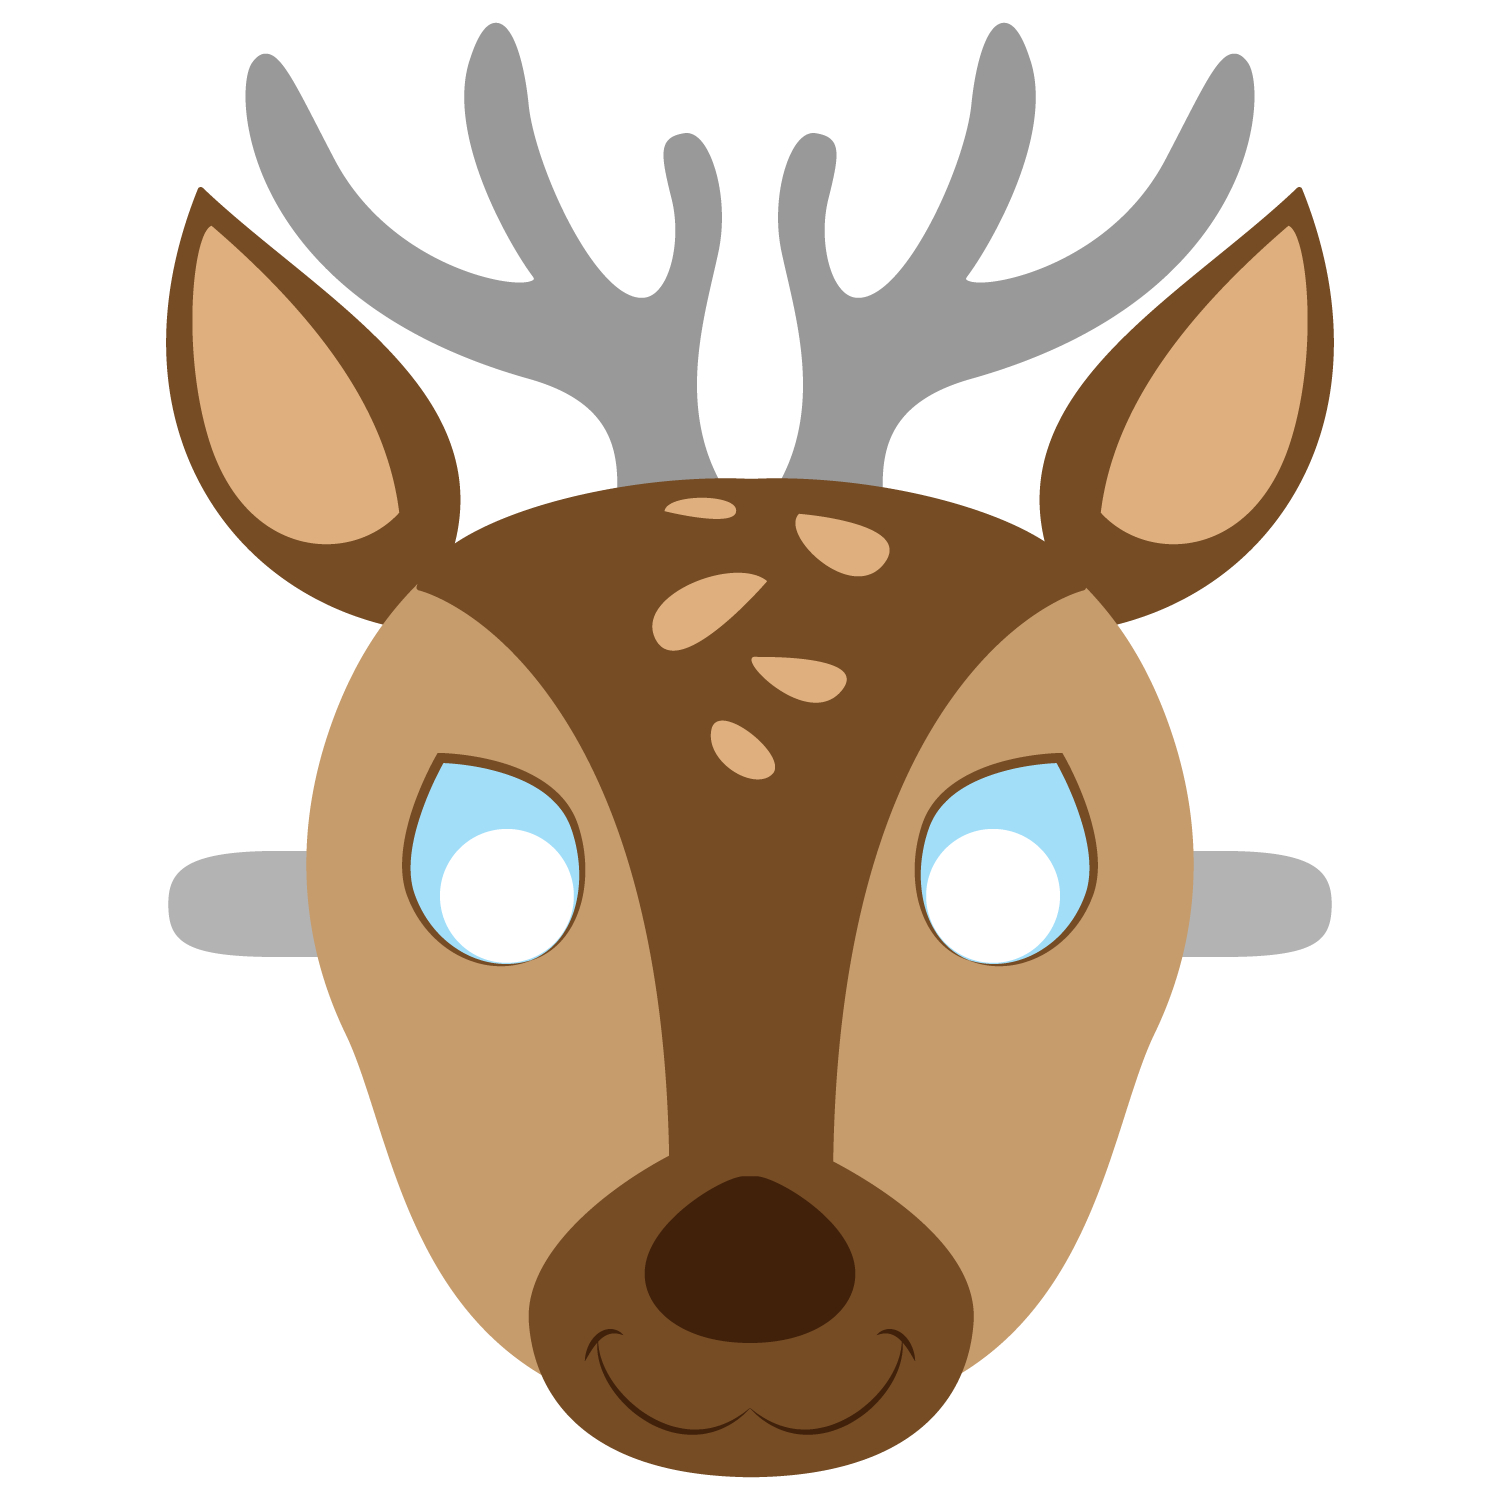 Deer Mask Template | Free Printable Papercraft Templates | Camping - Free Printable Wolf Mask